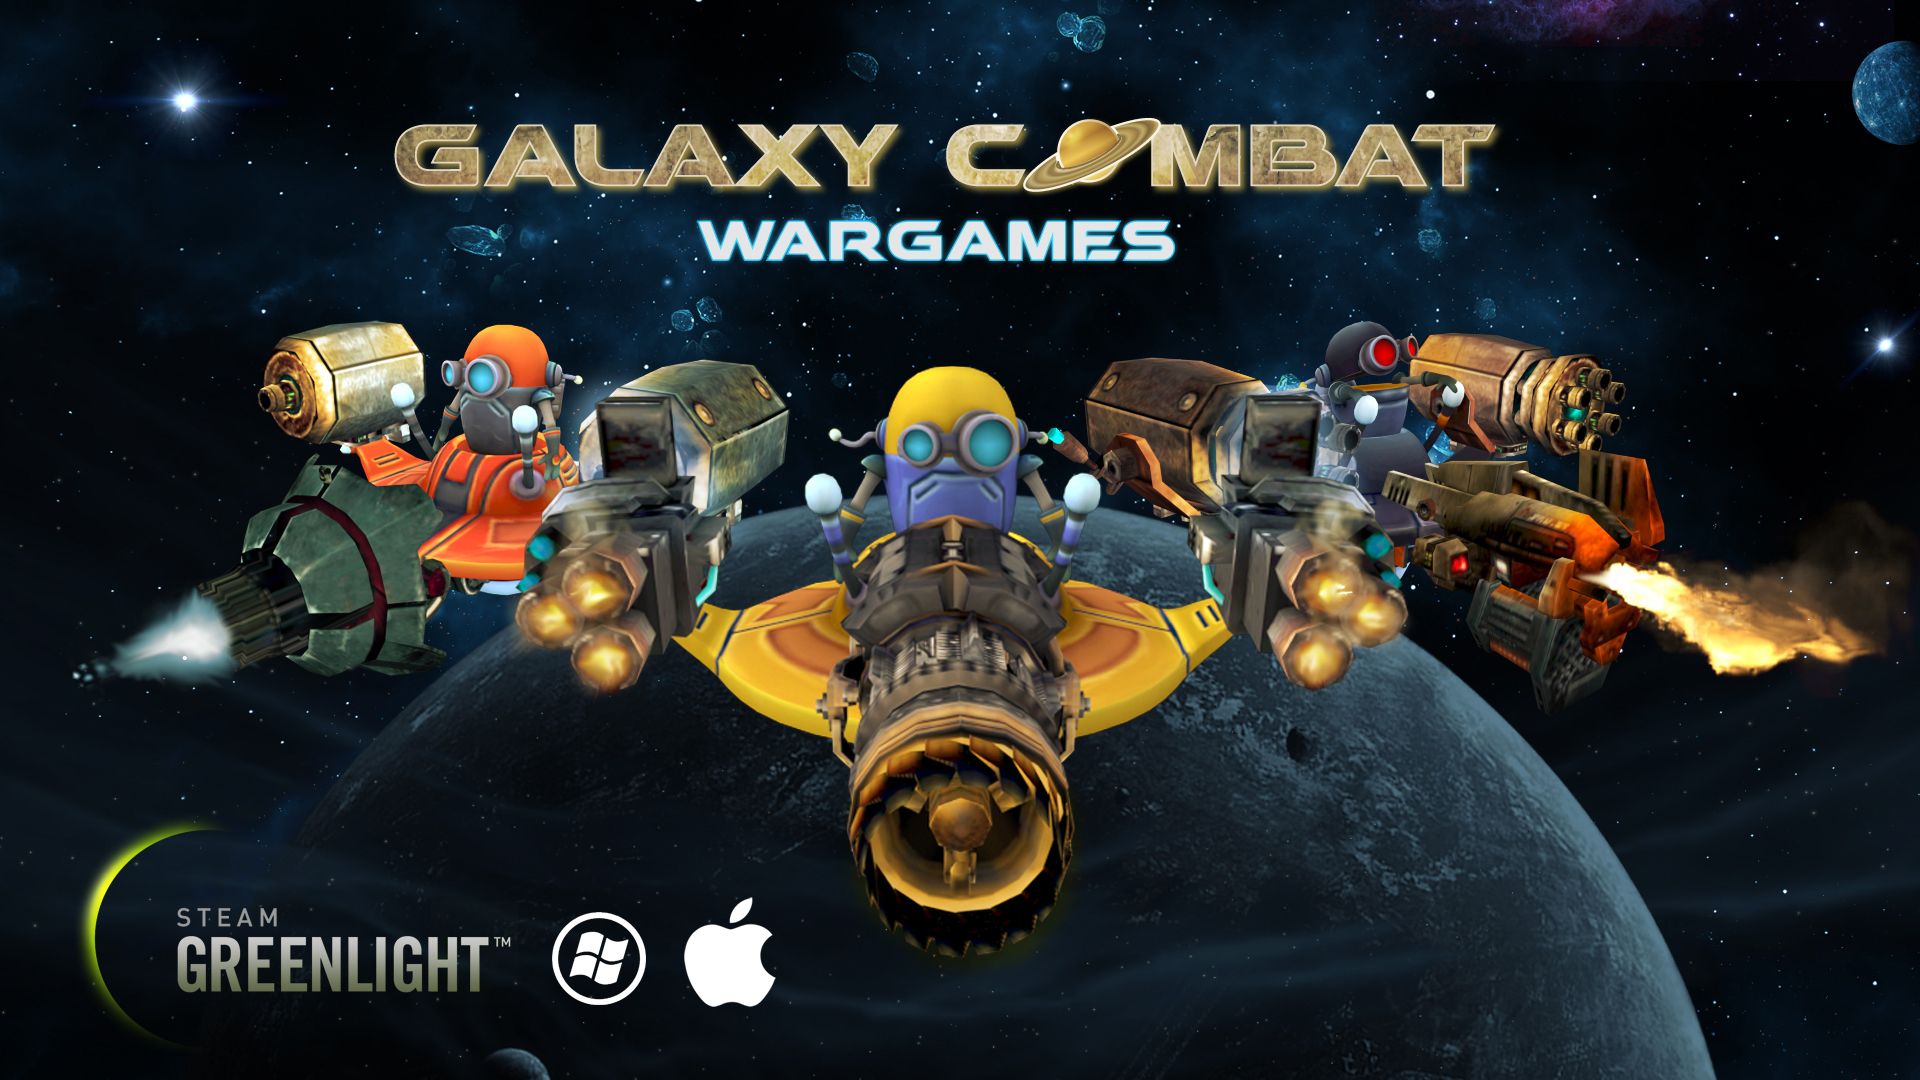 We are on Steam Greenlight! news - Galaxy Combat Wargames